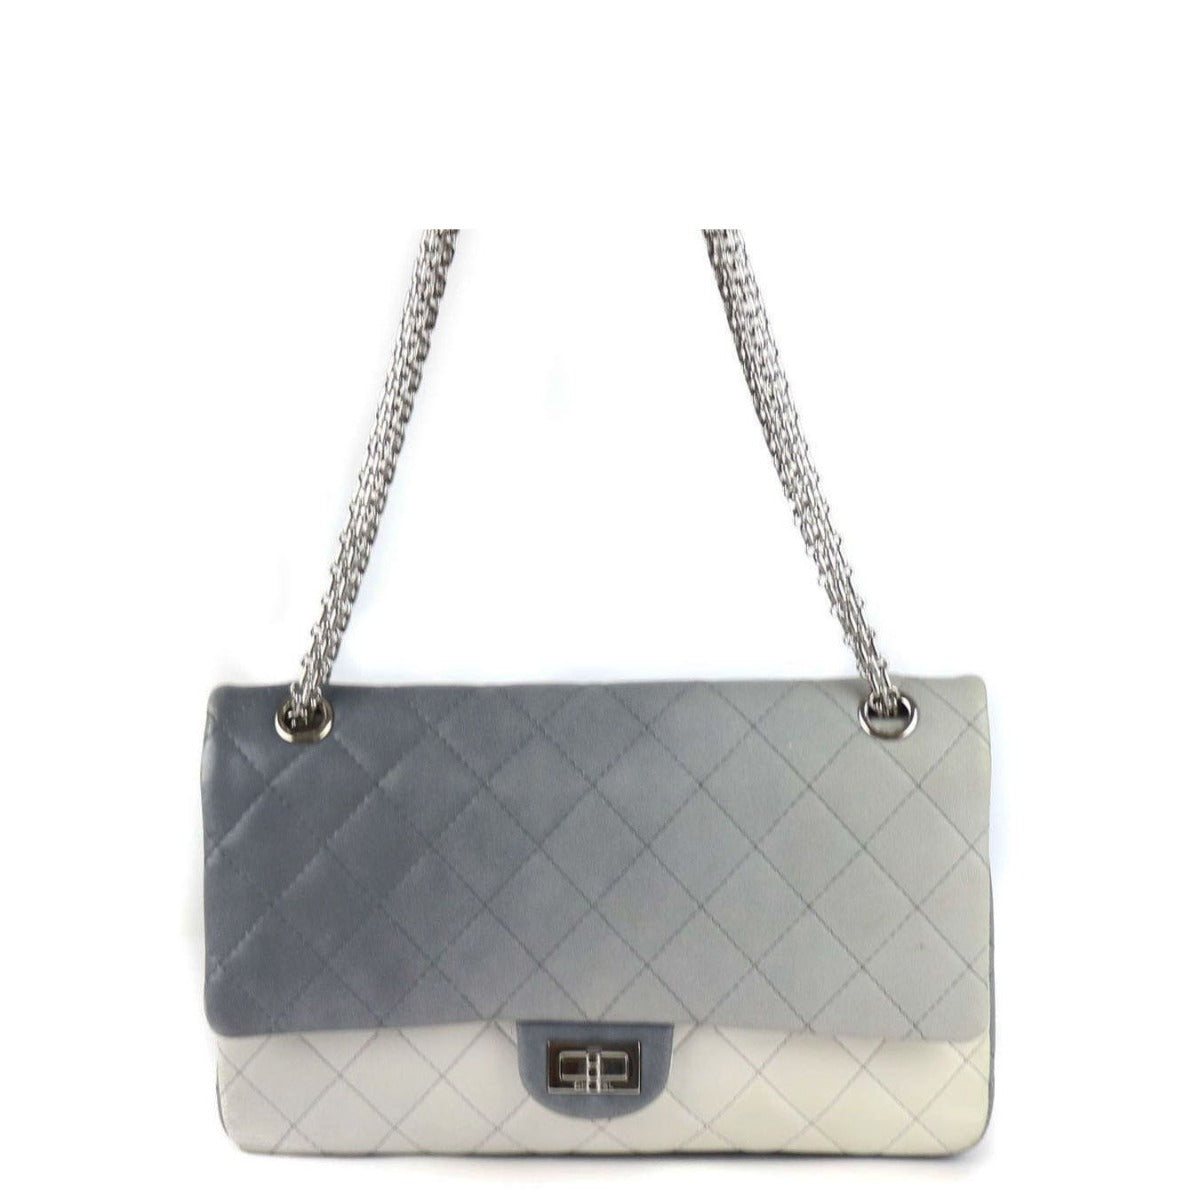 729622a1c7ef63 CHANEL Two-Toned Washed Lambskin 2.55 Reissue Quilted Classic 226 Flap Bag